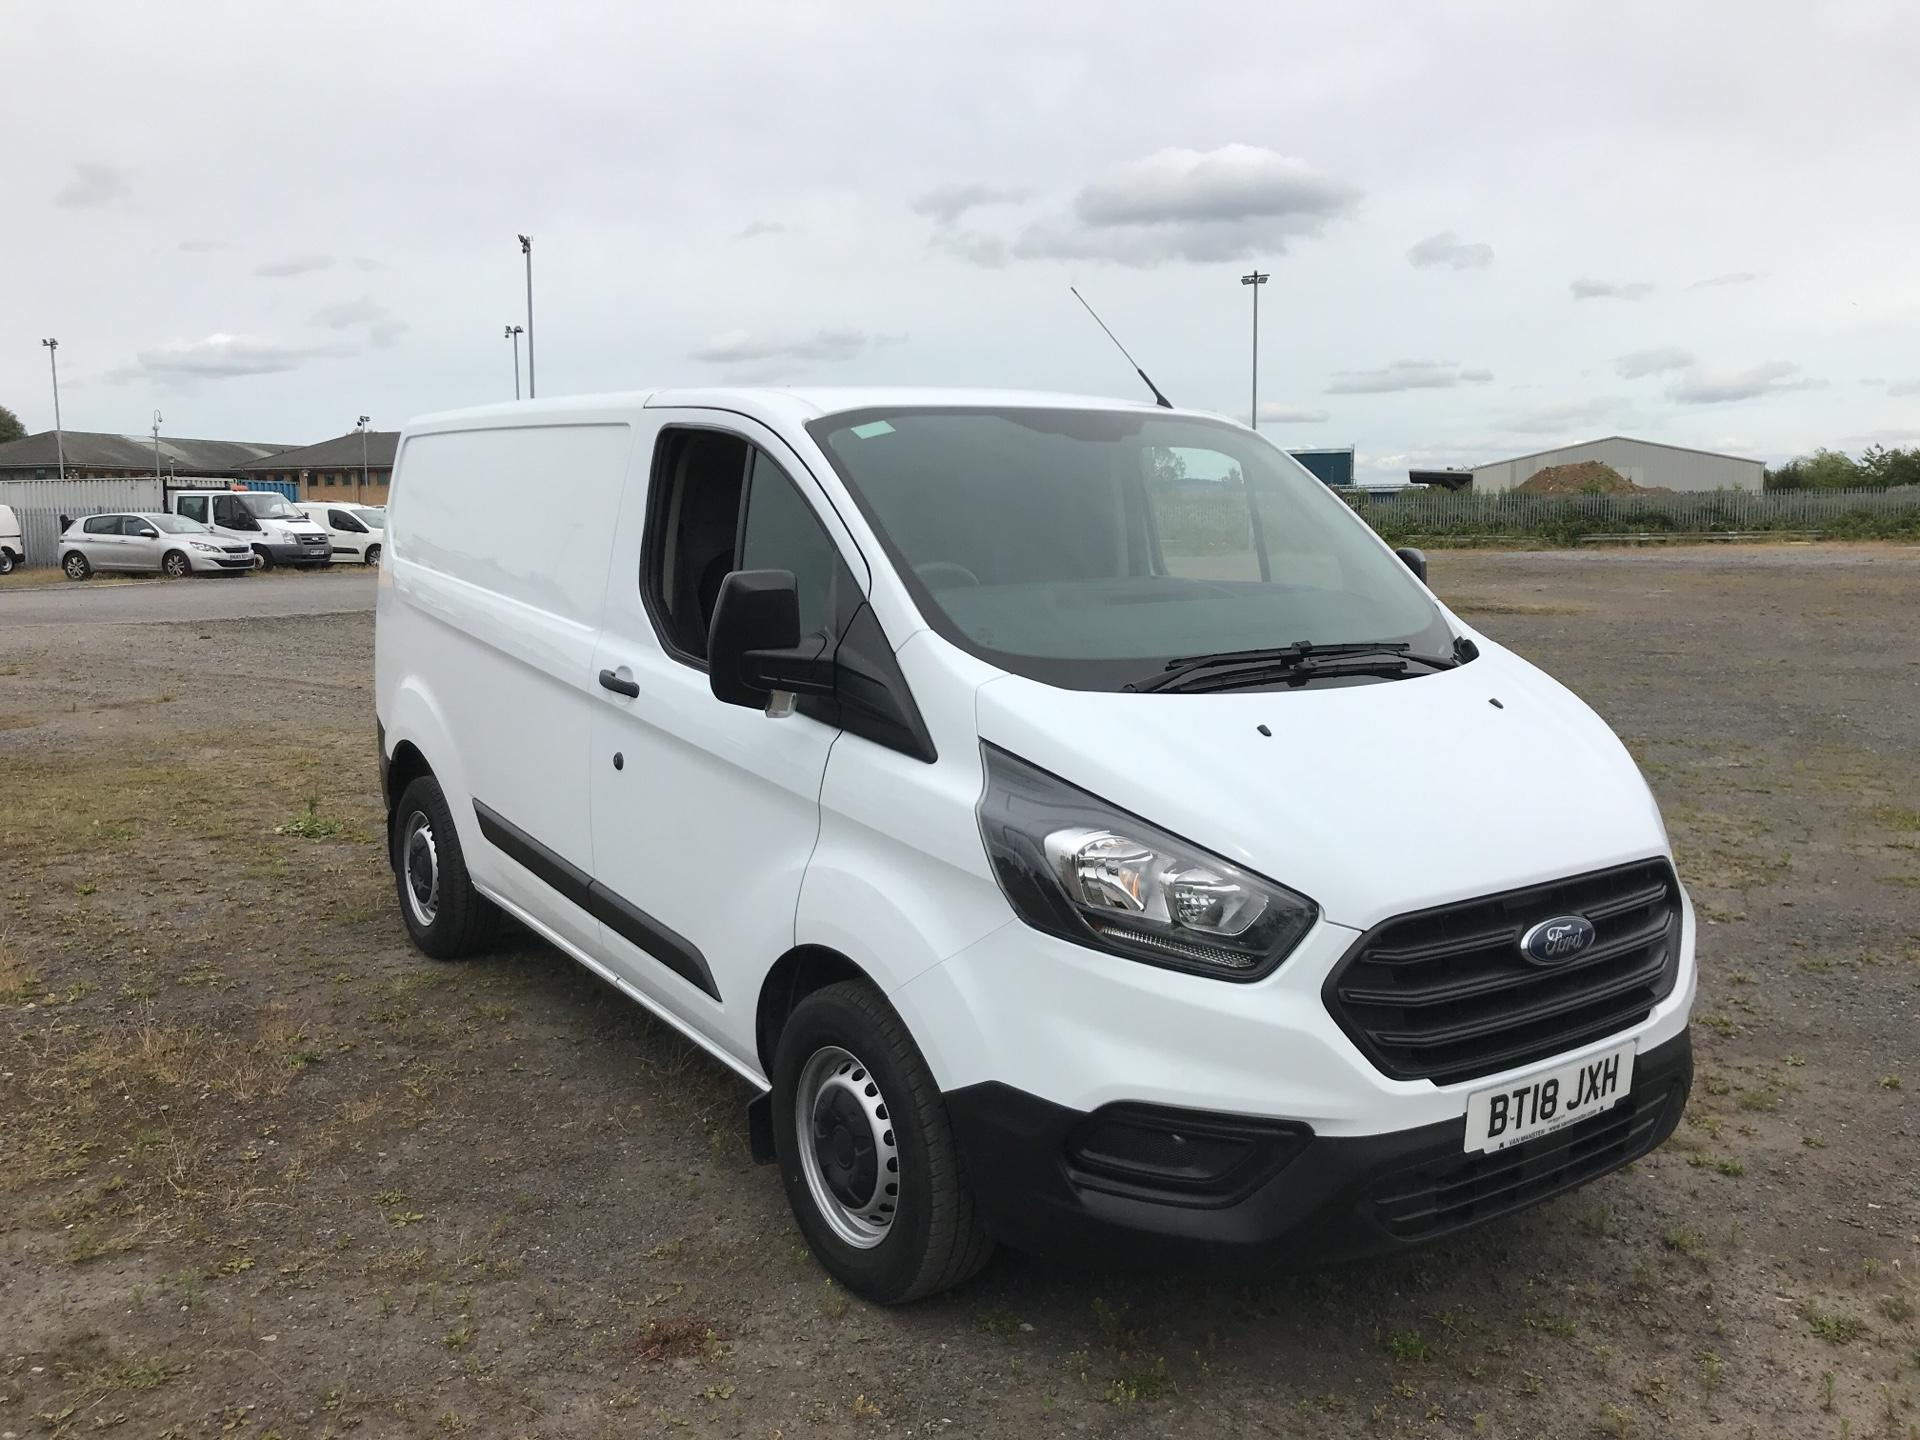 2018 Ford Transit Custom 300 L1 H1  2.0 TDI 105Ps  (BT18JXH)